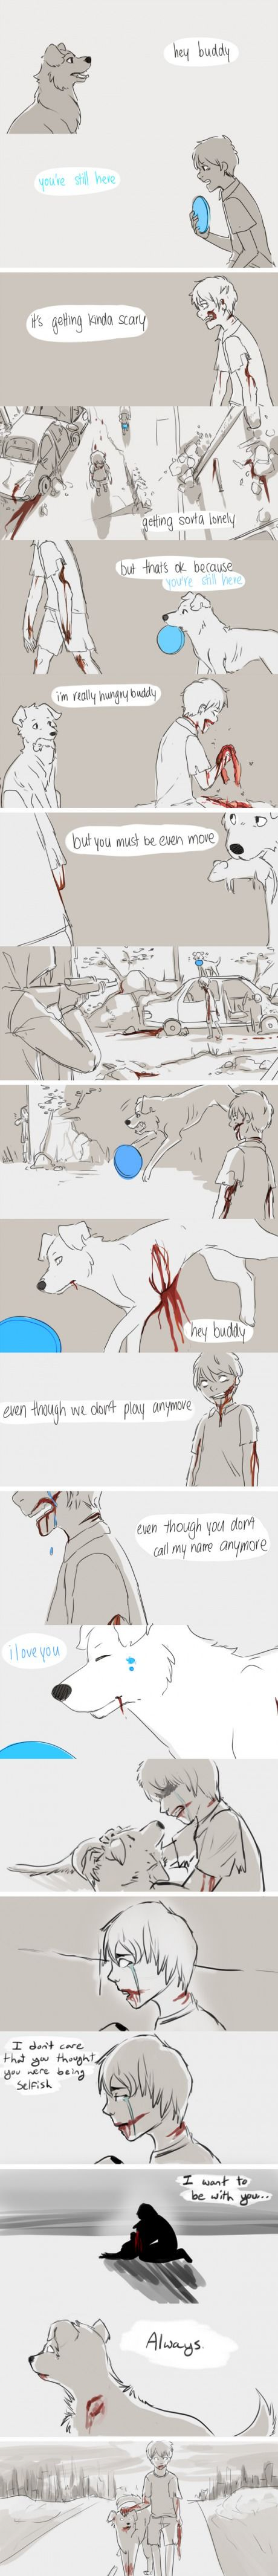 I don't know why I like this, just do. Zombie feels.